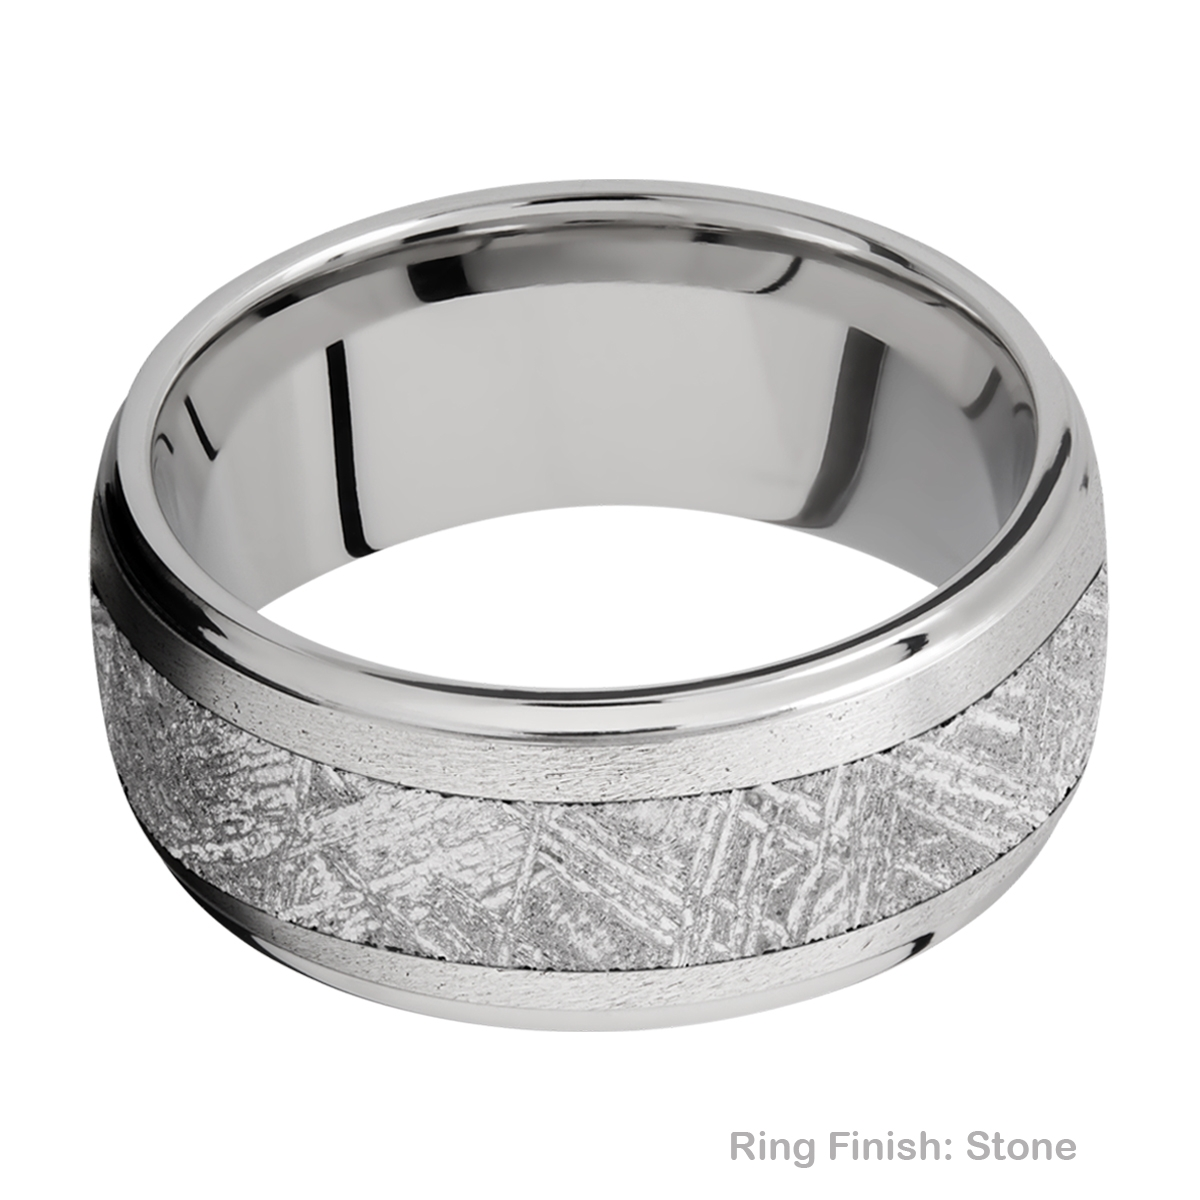 Lashbrook 10DGE15/METEORITE Titanium Wedding Ring or Band Alternative View 6